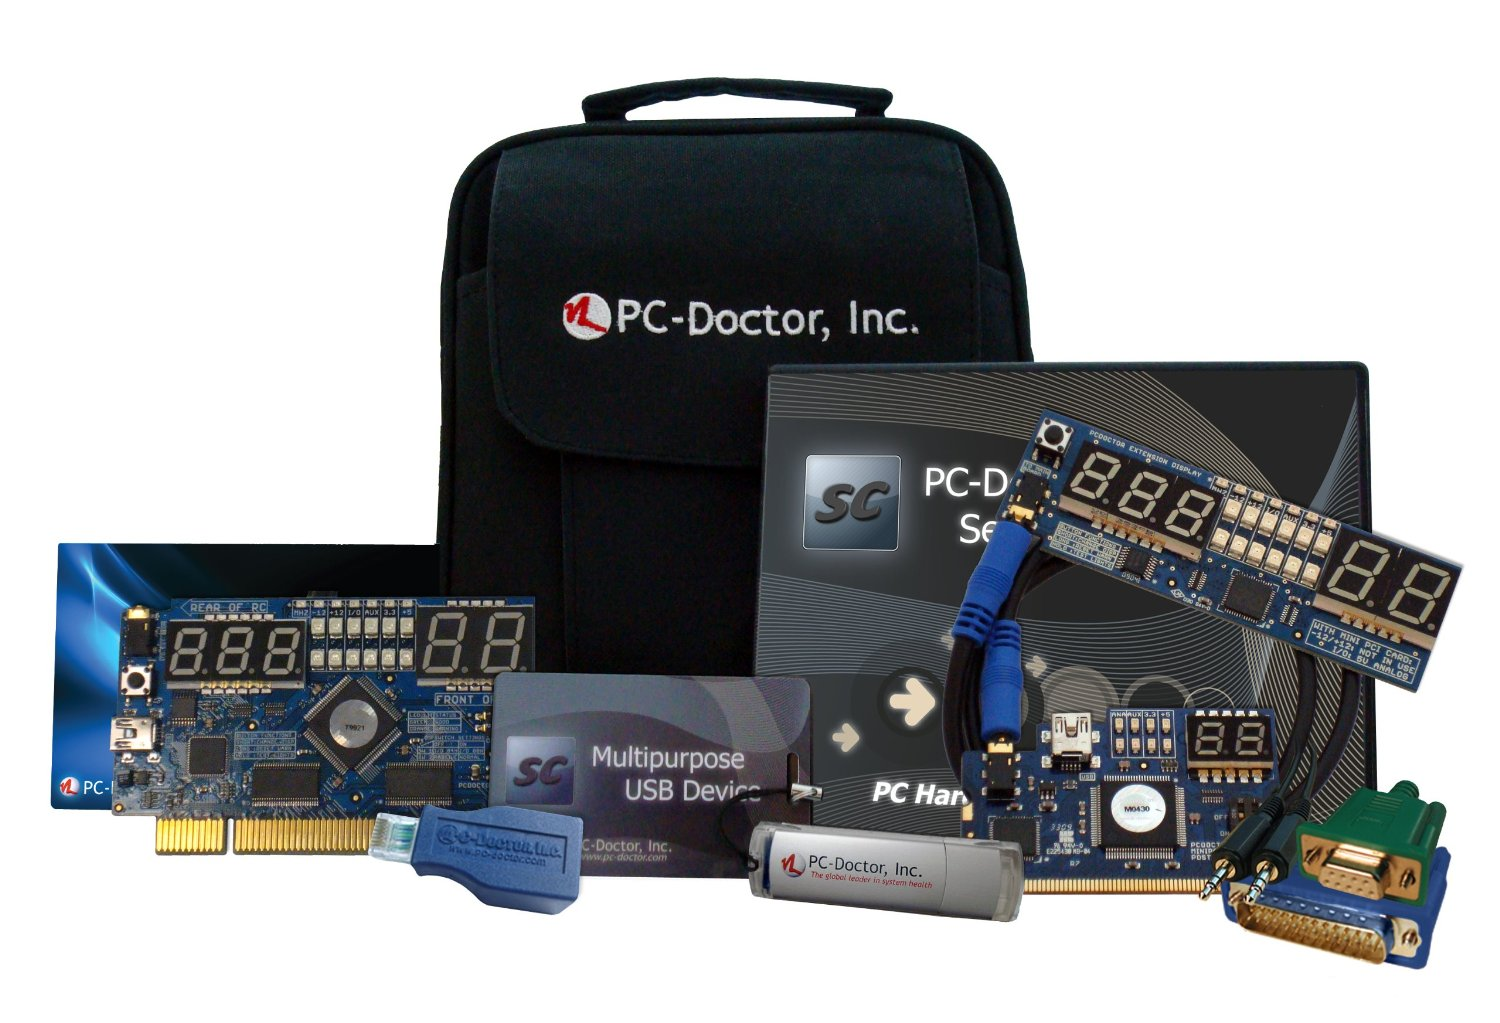 Allen Computer Services are now a fully licensed PC-Doctor, Inc